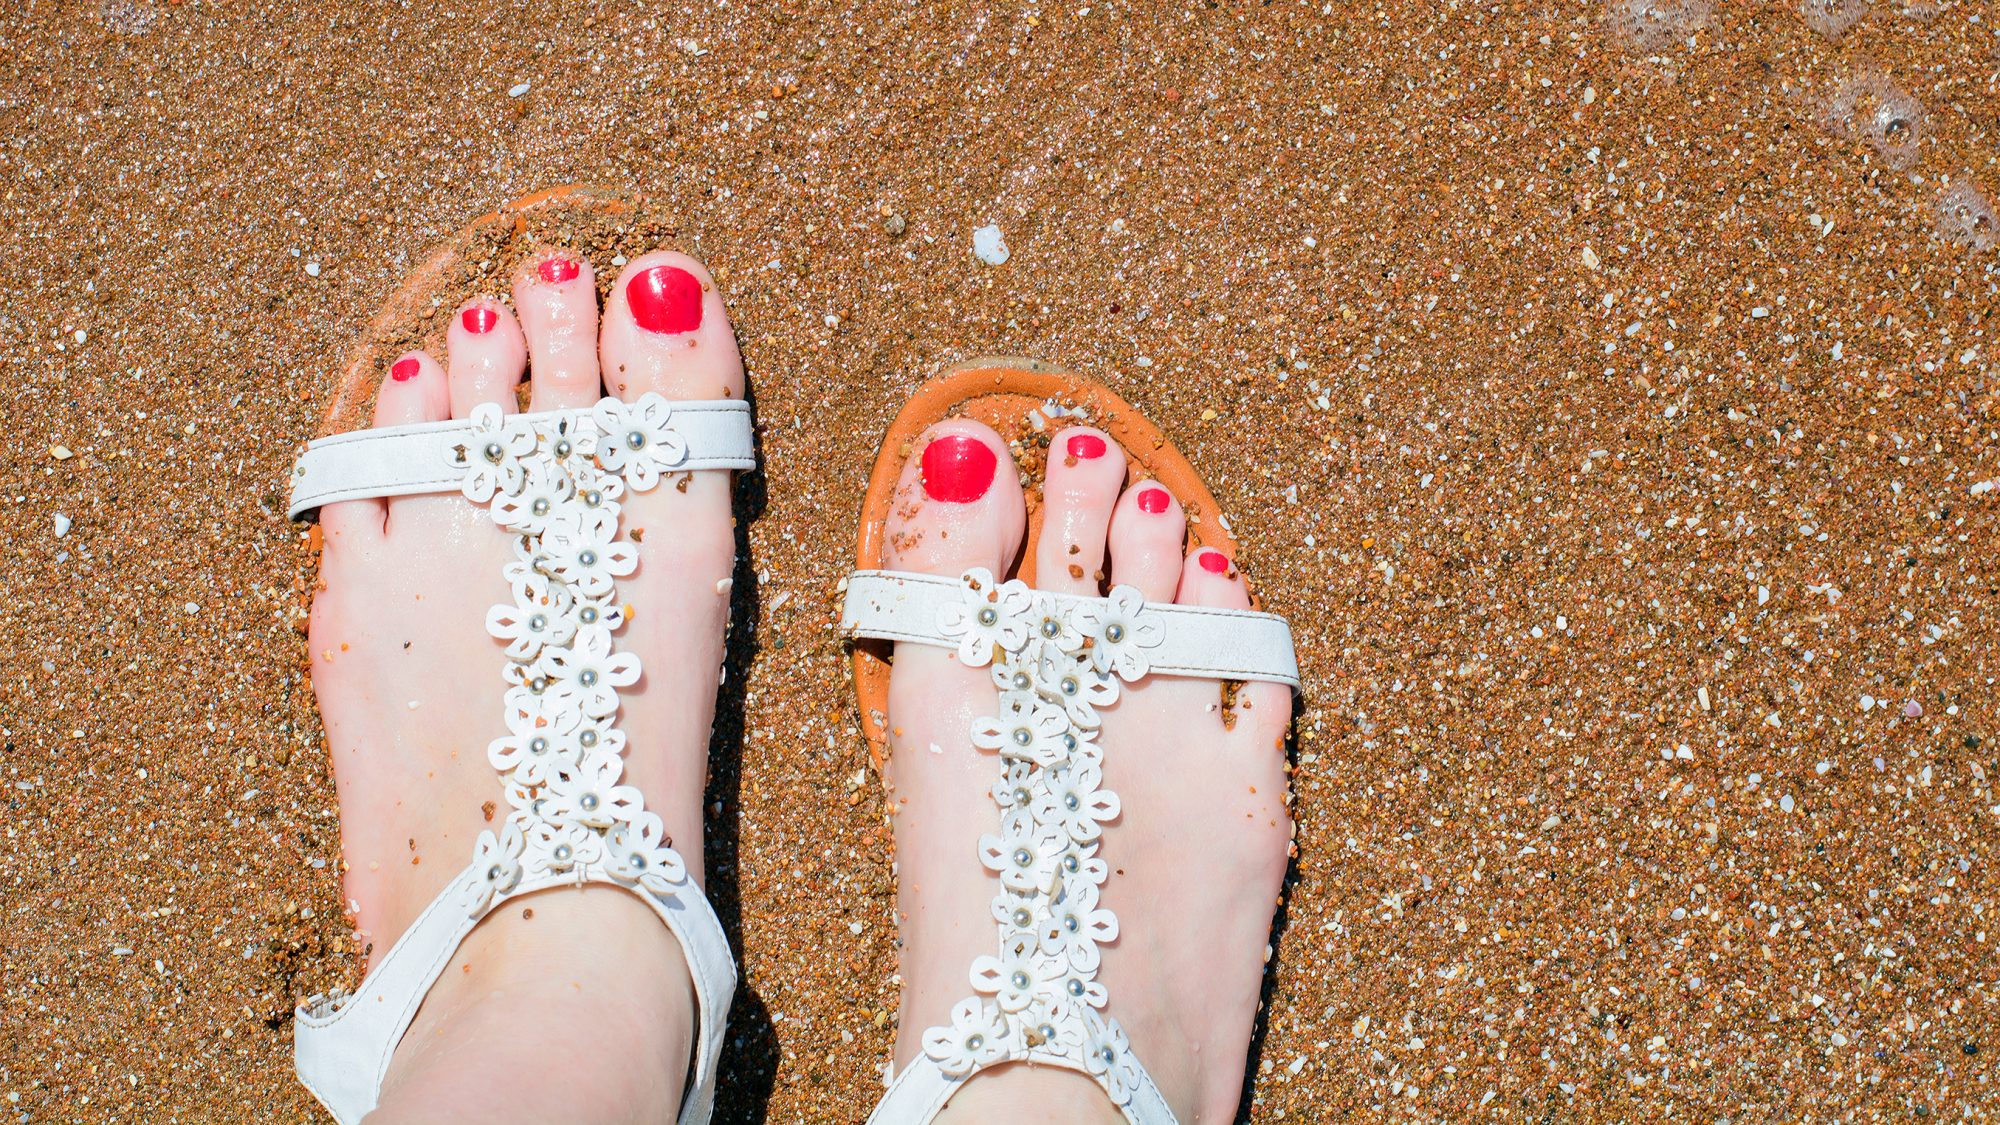 Places to remember to apply sunscreen - feet